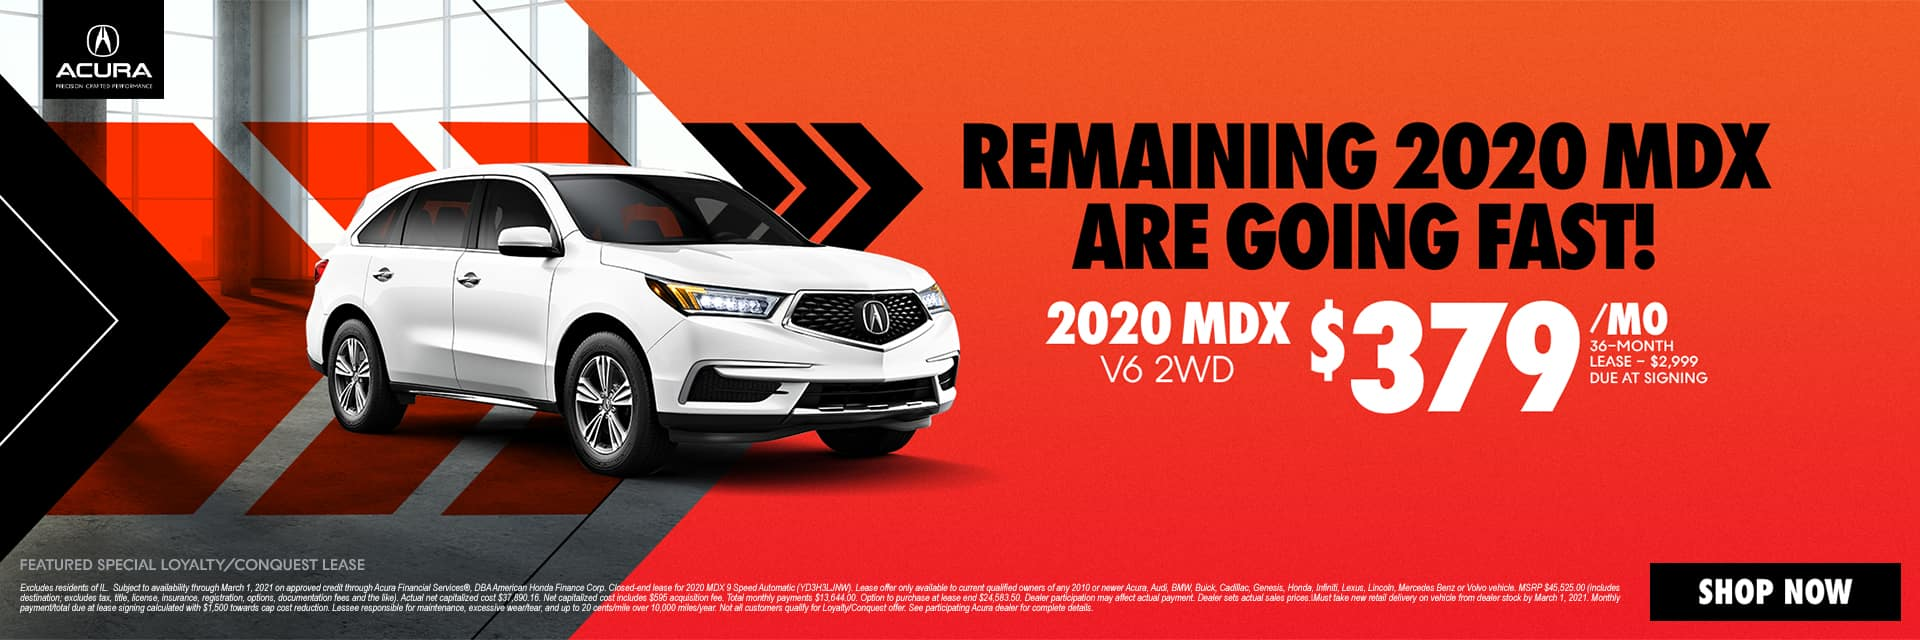 1920x640_21004_Acura_2020 MDX Sell-Down DAA_CTROT_2WD Lease